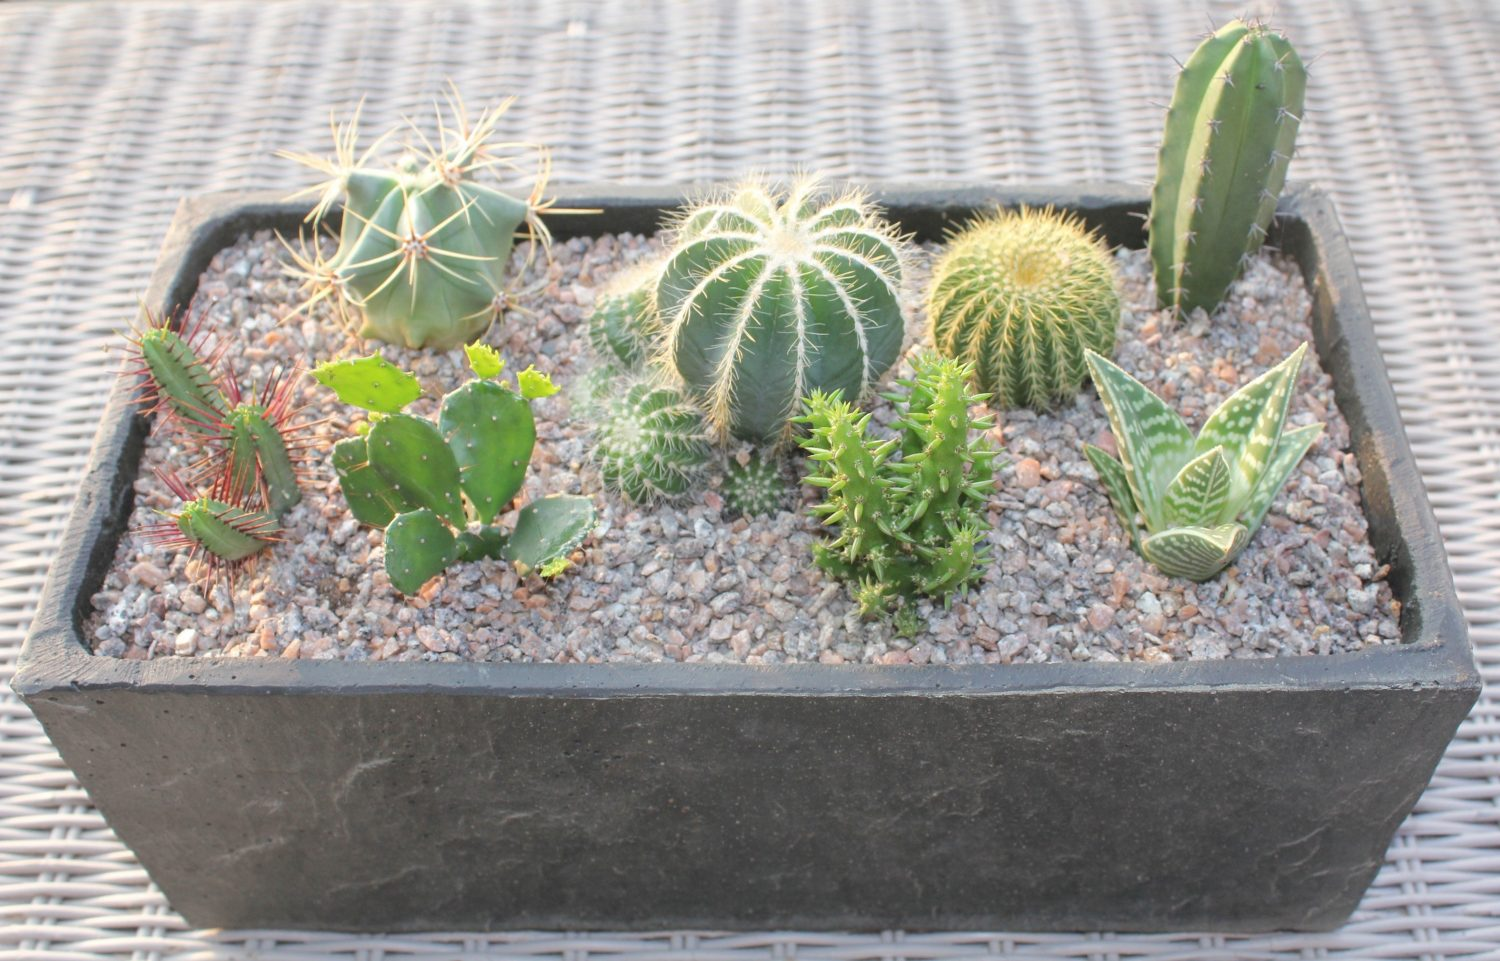 Cacti and succulents (contrary to popular opinion in my family) do need to be watered